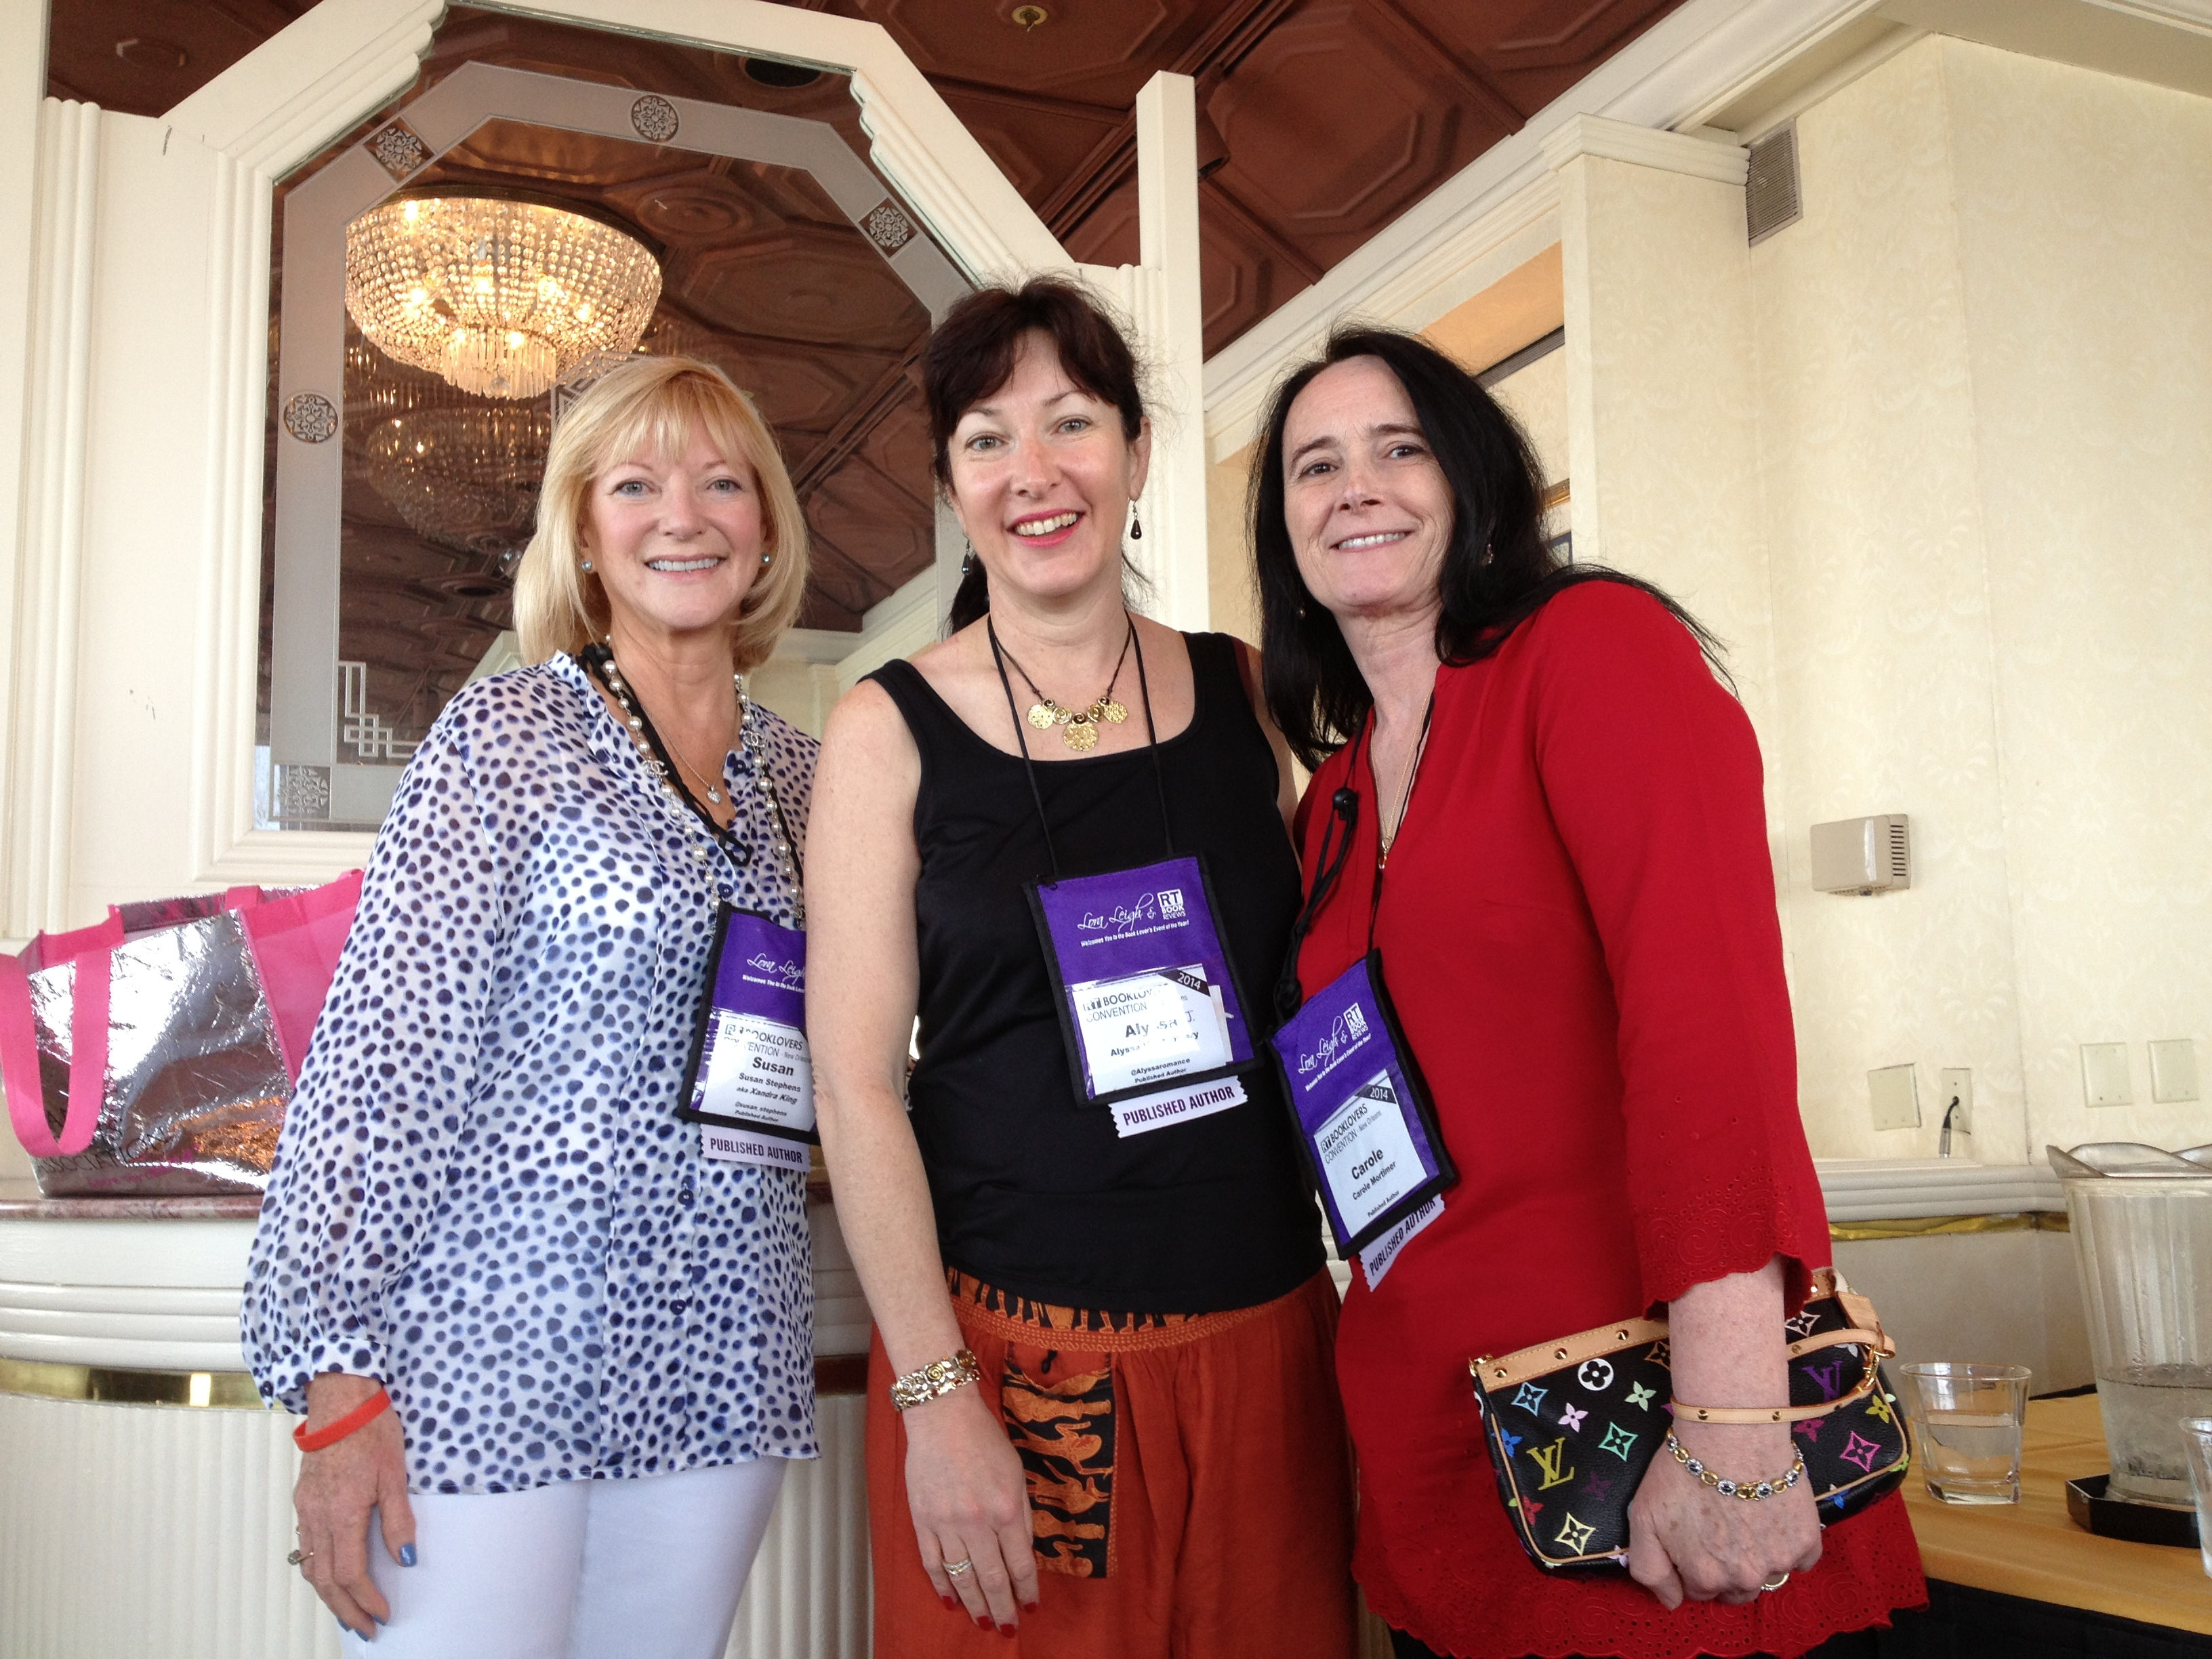 Susan Stephens, Alyssa J. Montgomery and Carole Mortimer